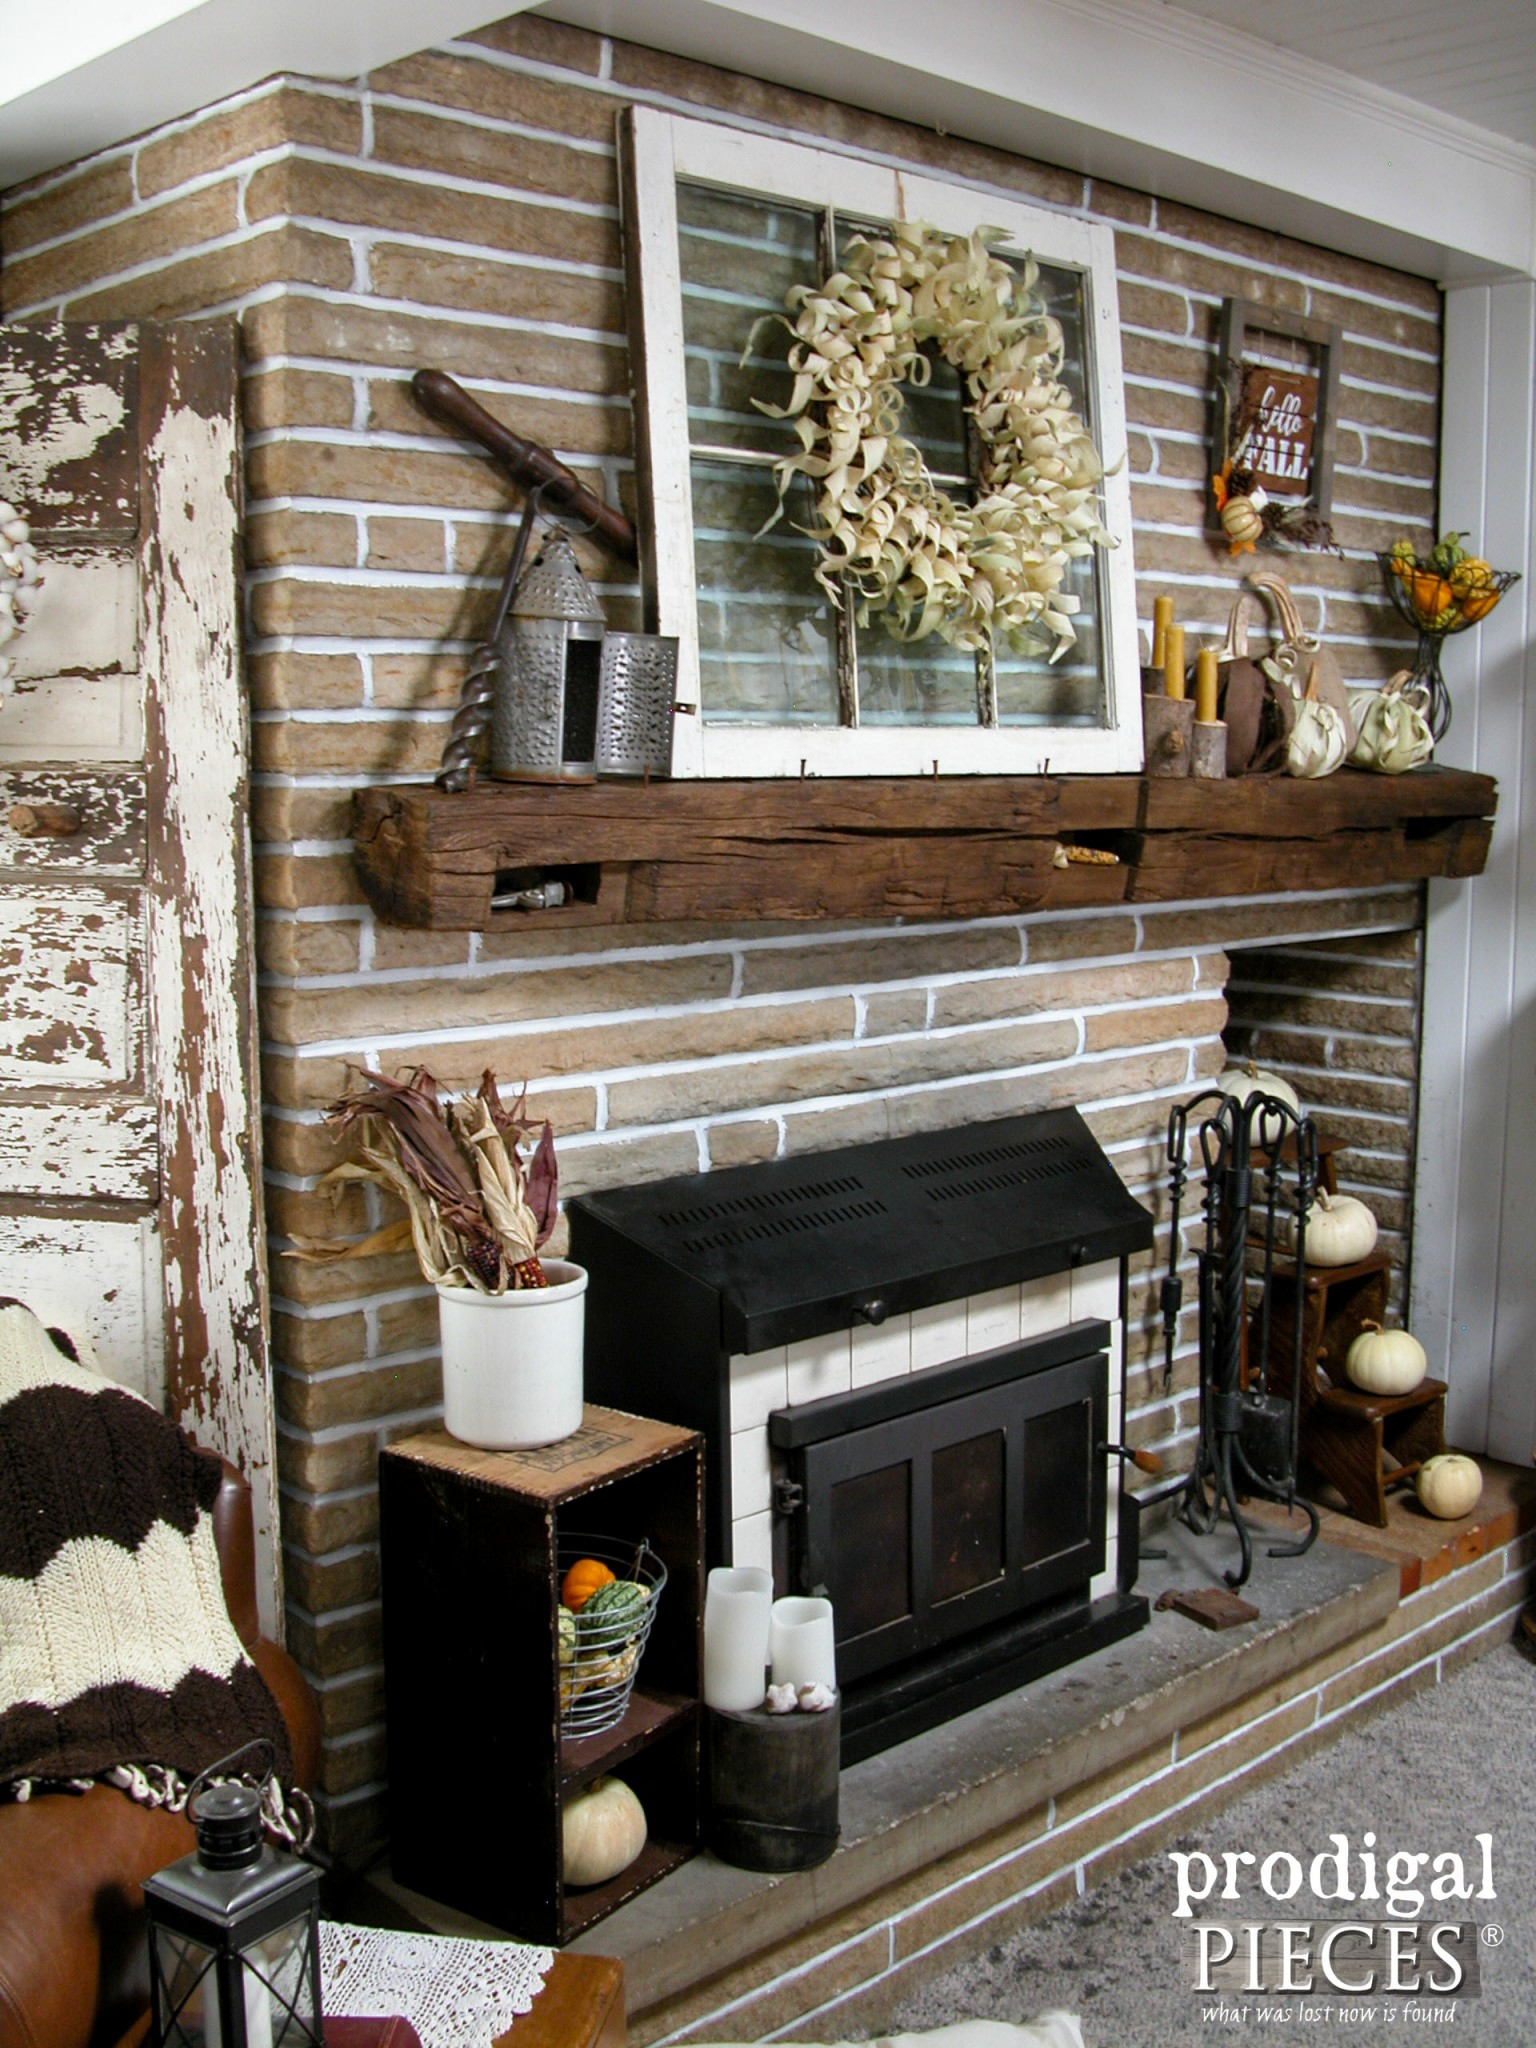 Farmhouse Rustic Fireplace Mantel Decor Corn Husk Pumpkins And Wreath Fireplace Makeover